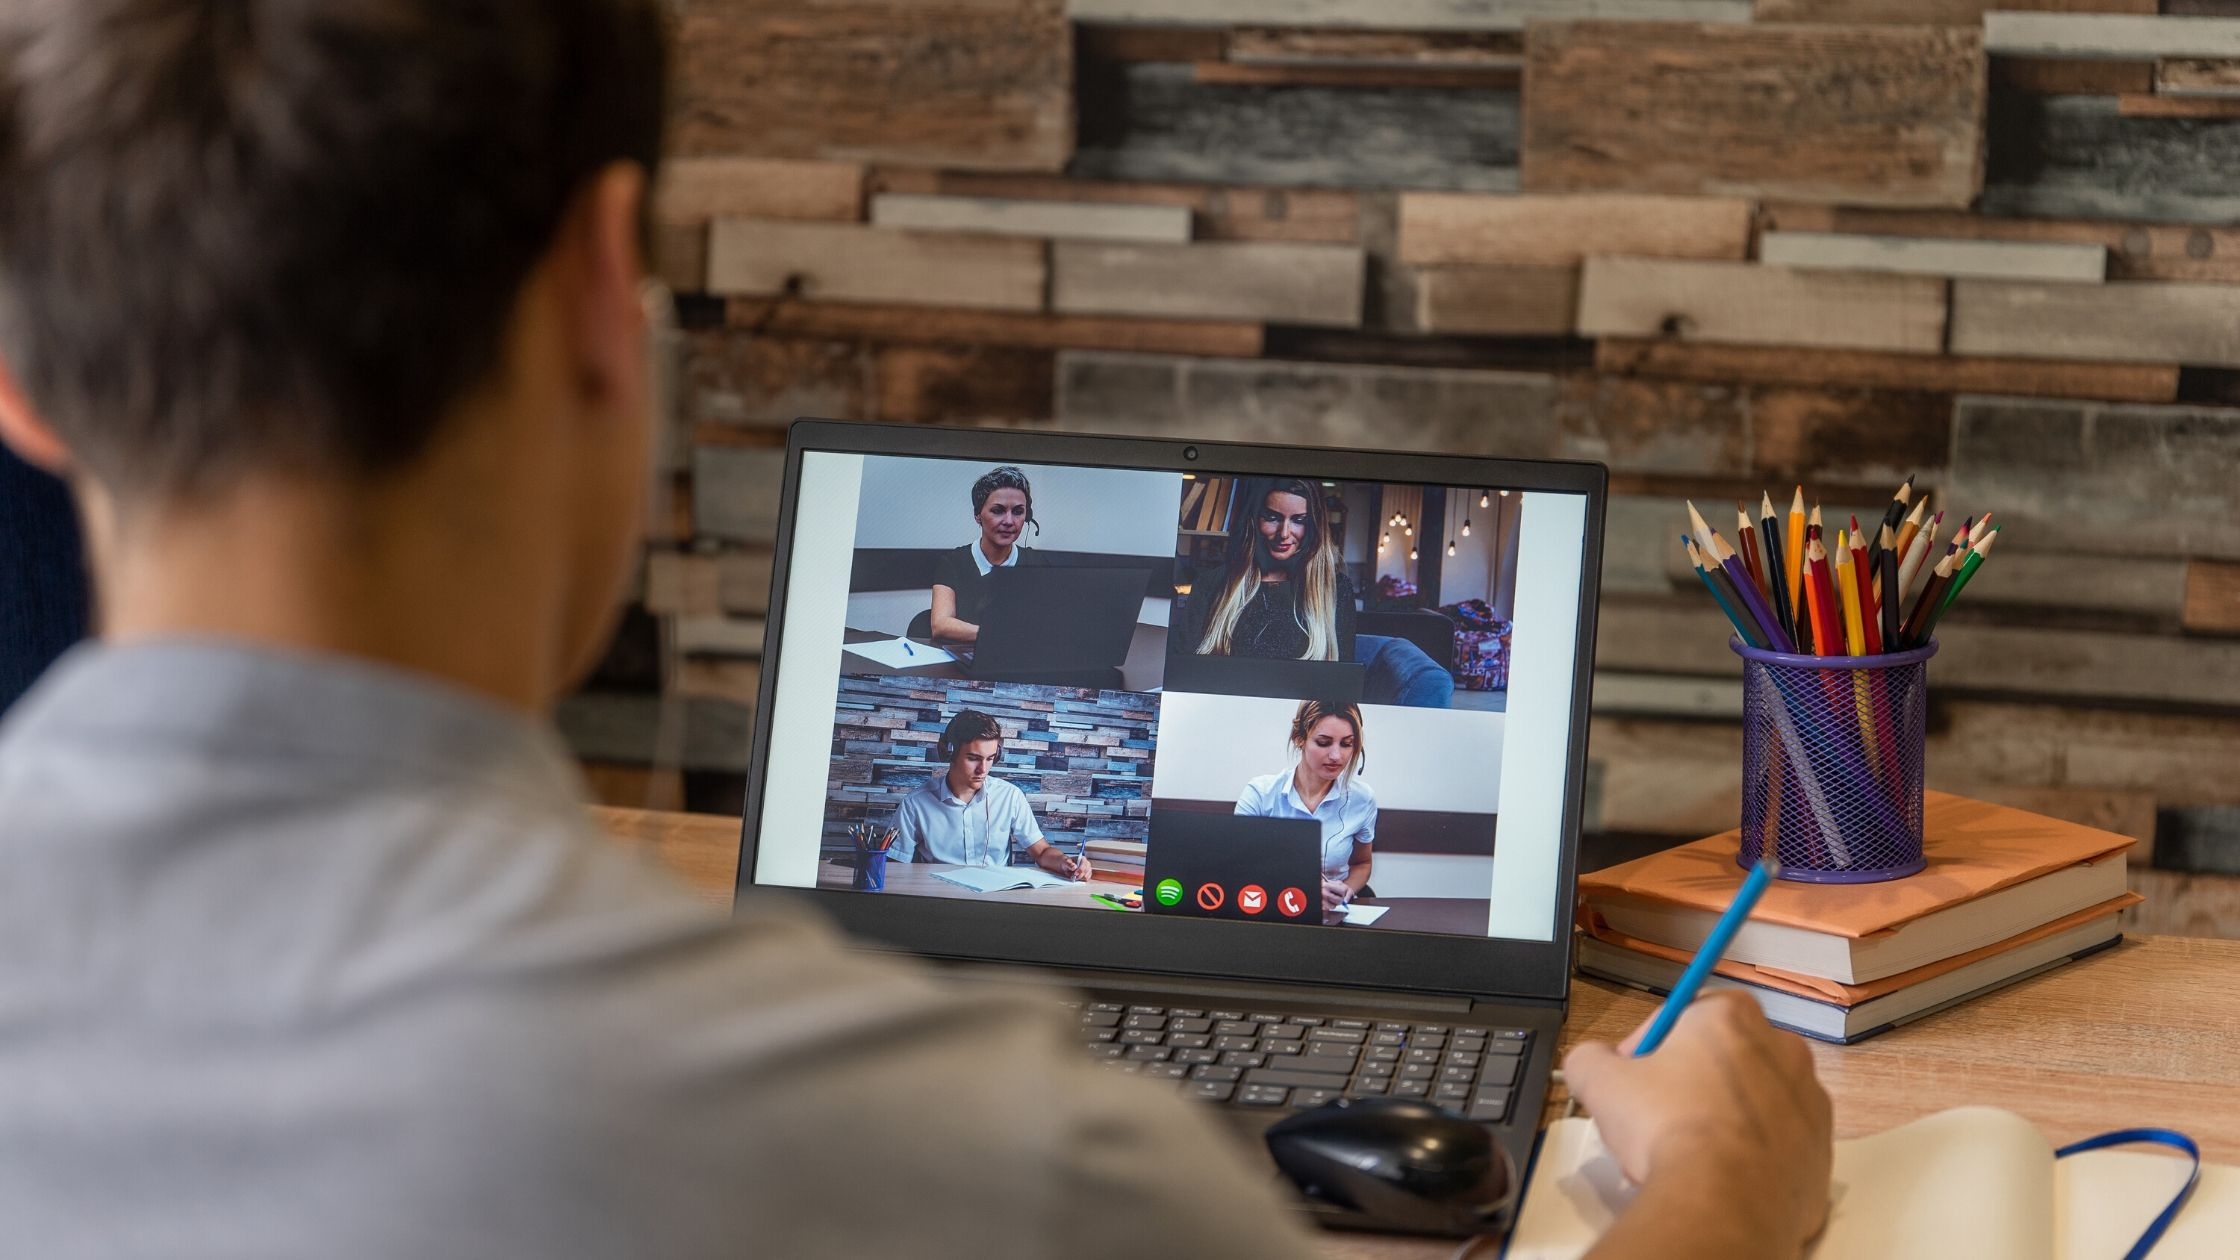 Remote worker video conferencing